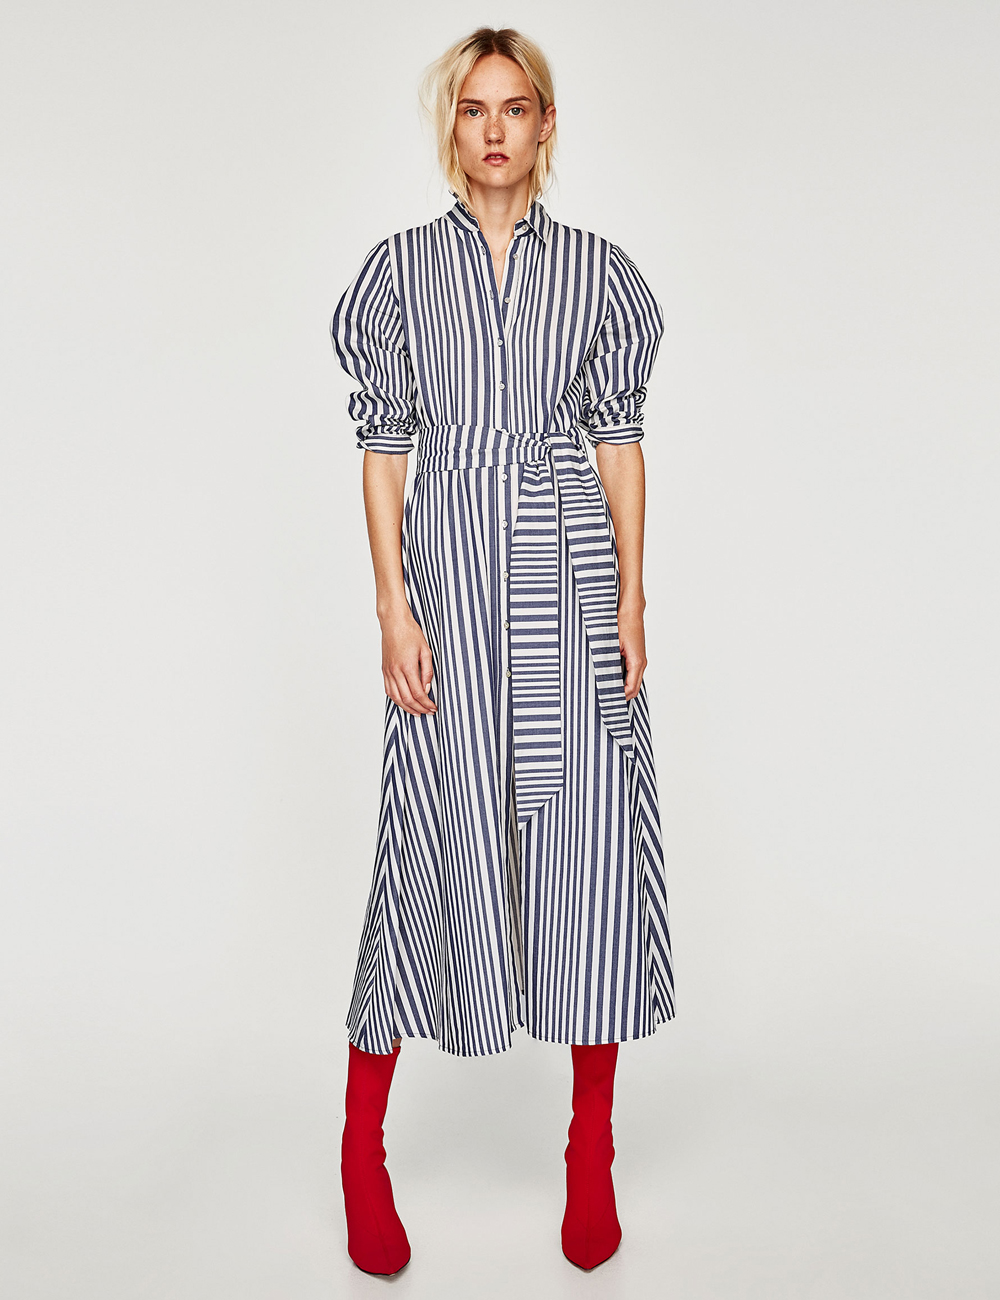 9e7c433c160 This Best-Selling Zara Dress Is Back With A New Season Update